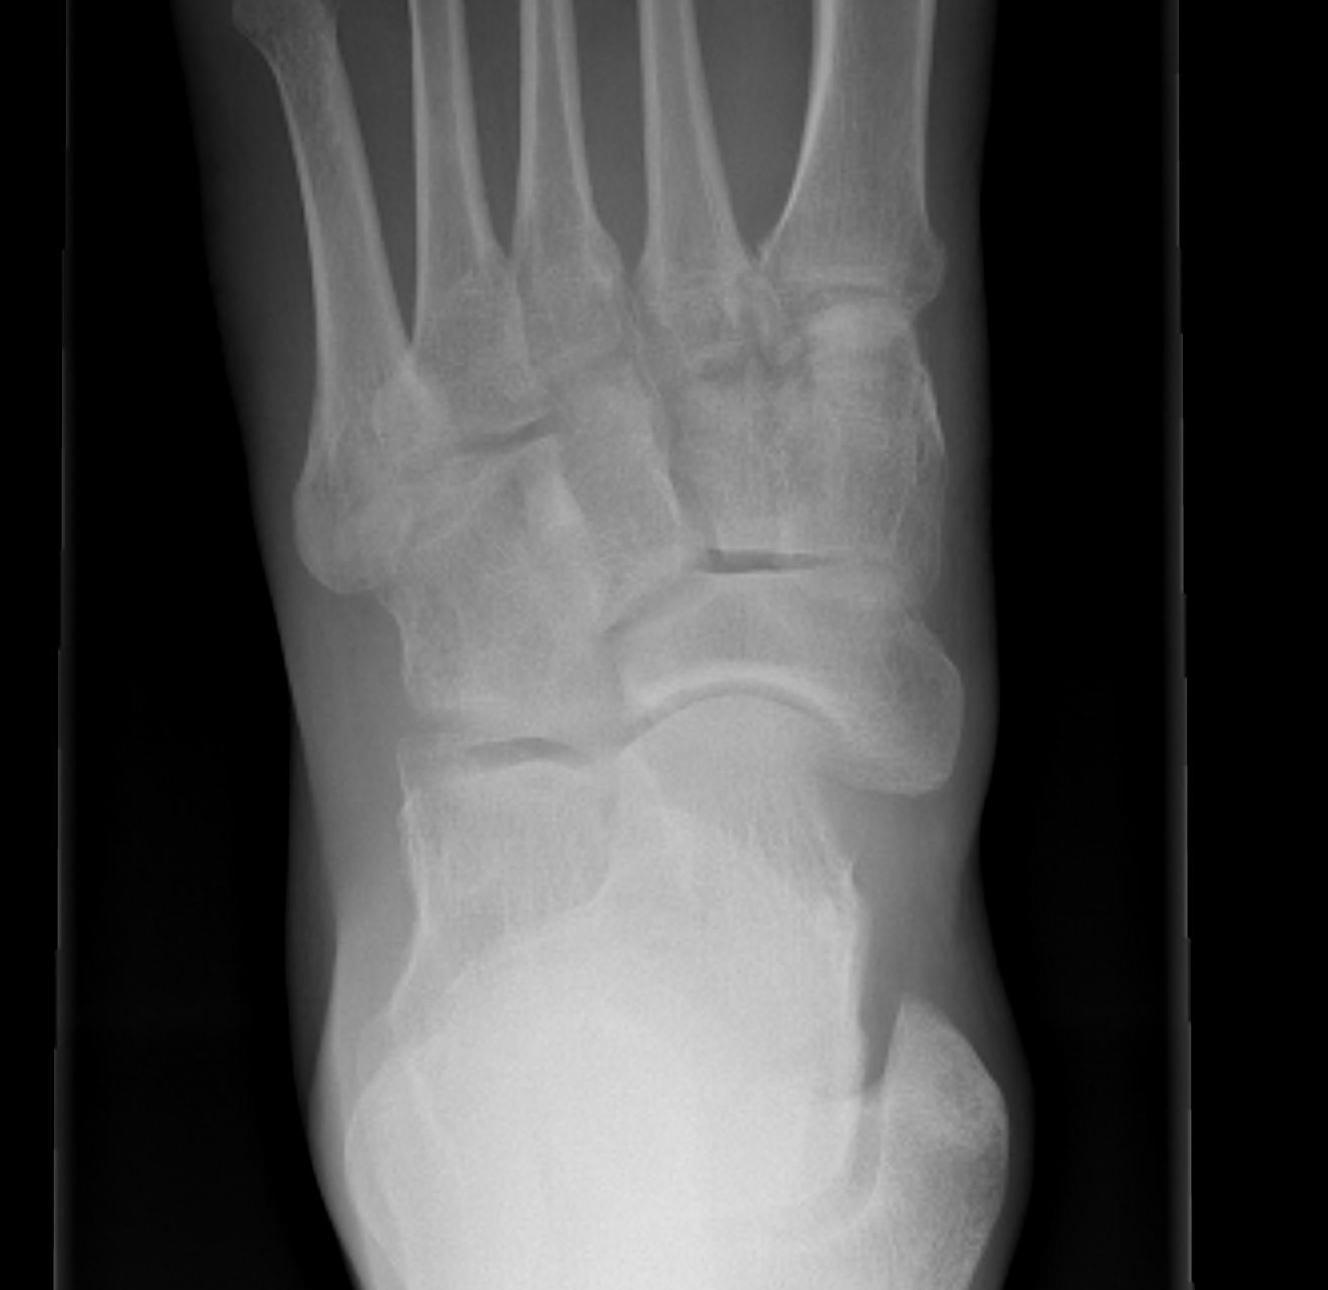 Accessory Navicular Cornuate